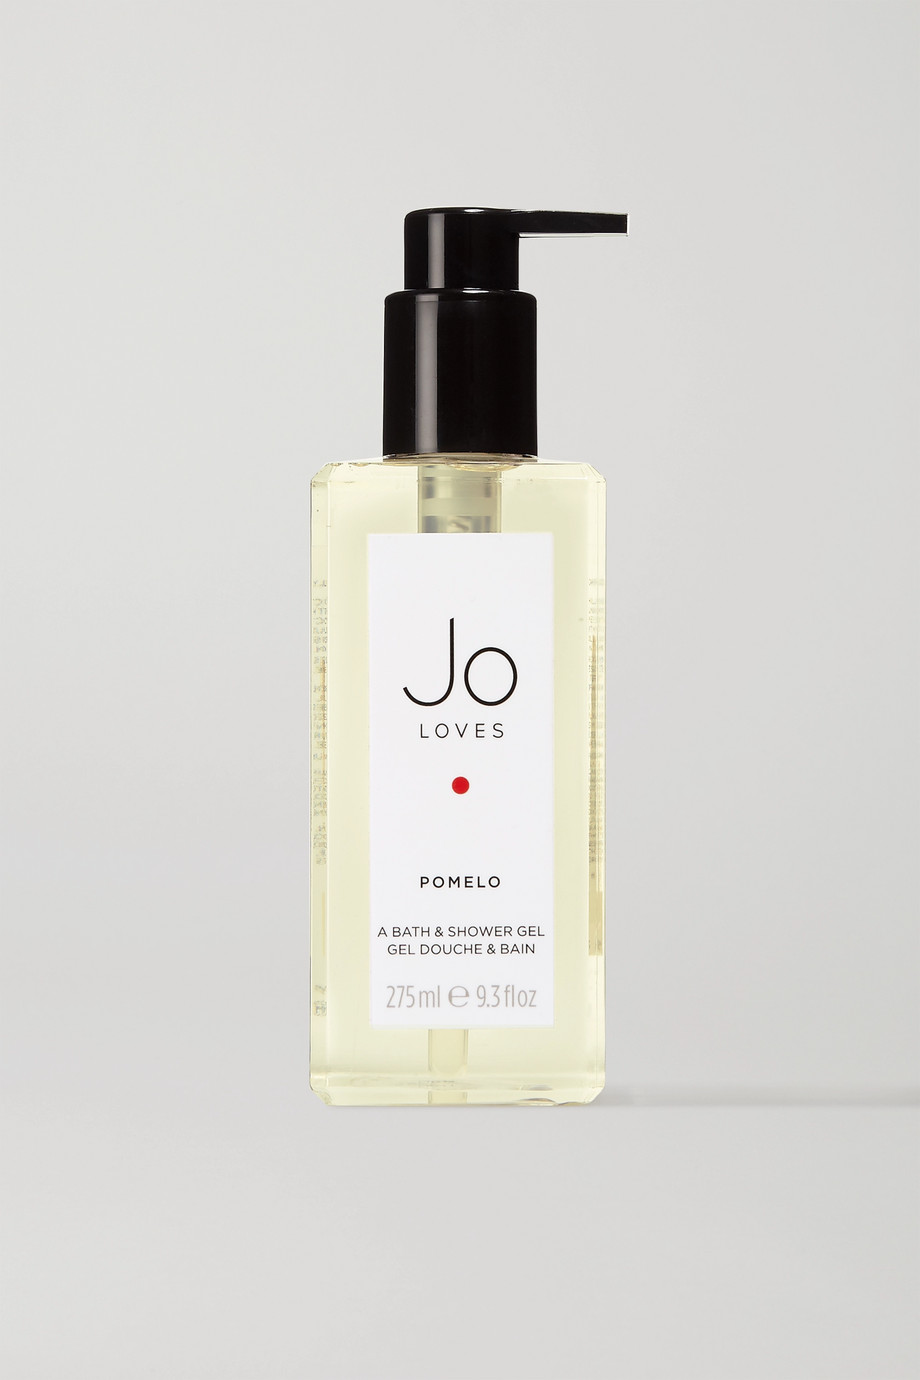 Jo Loves Pomelo Bath & Shower Gel, 275ml